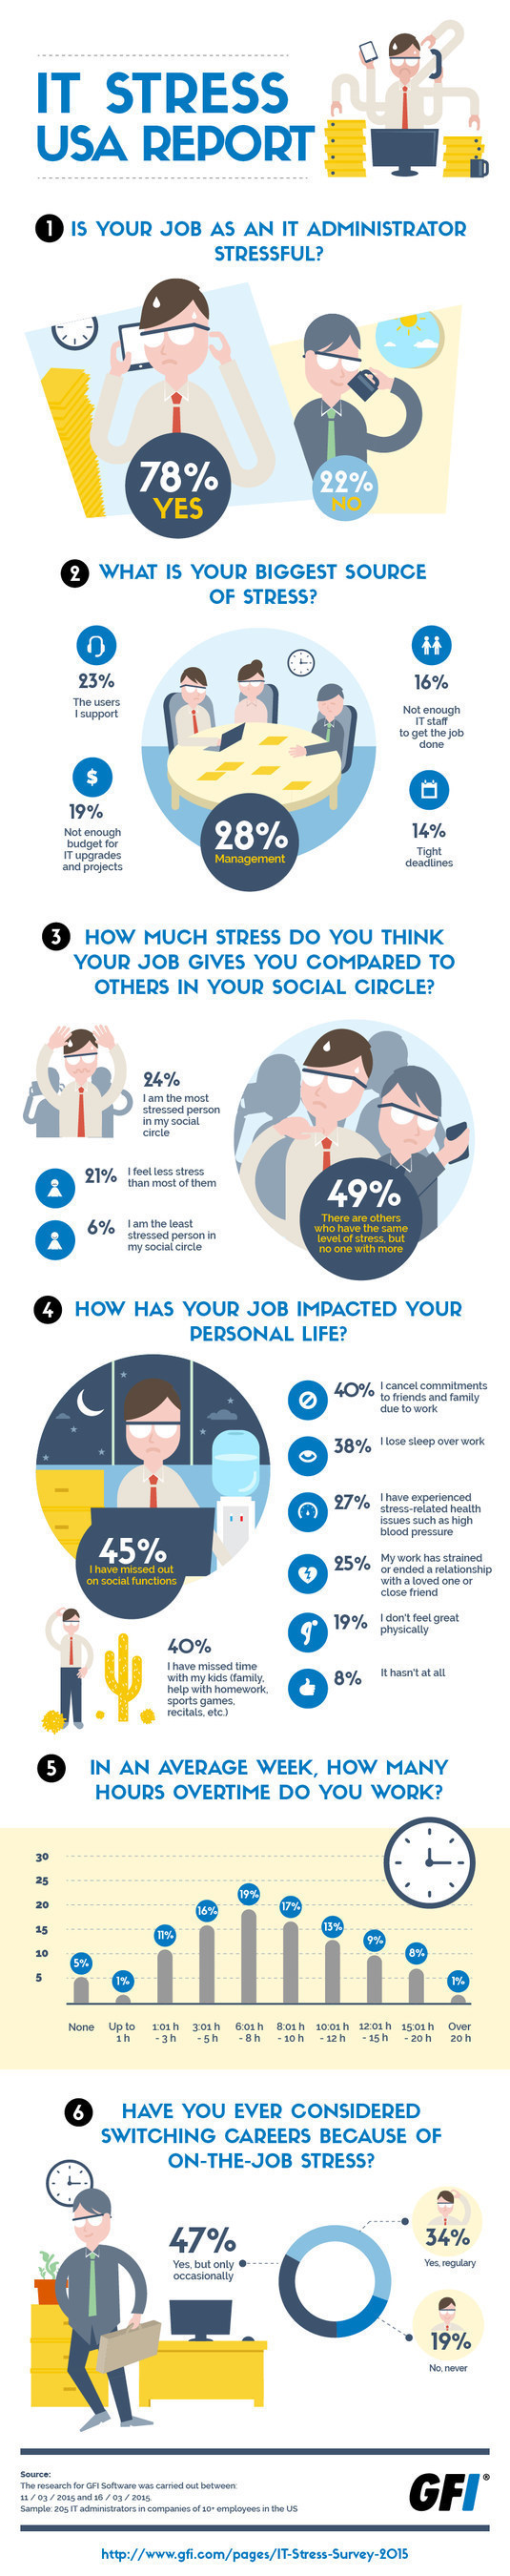 IT Staff Experience Increasing Levels of Stress in 2015